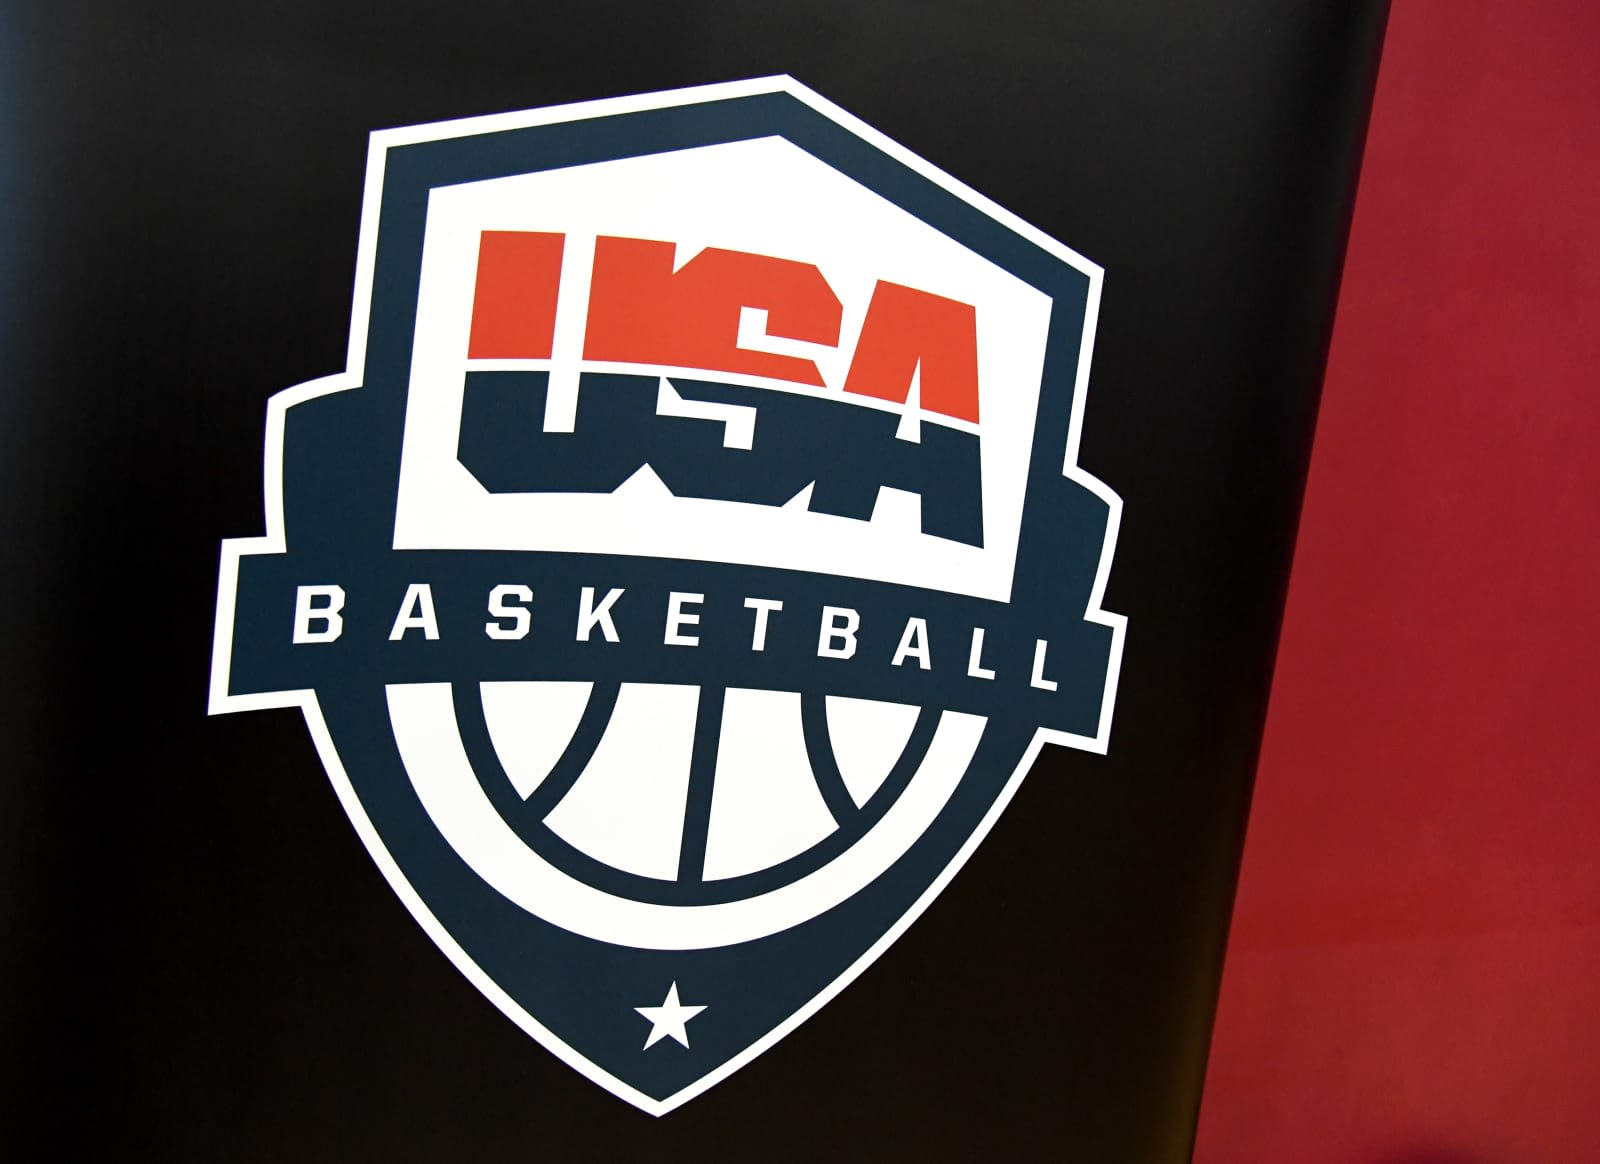 Twitch will stream Team USA basketball games